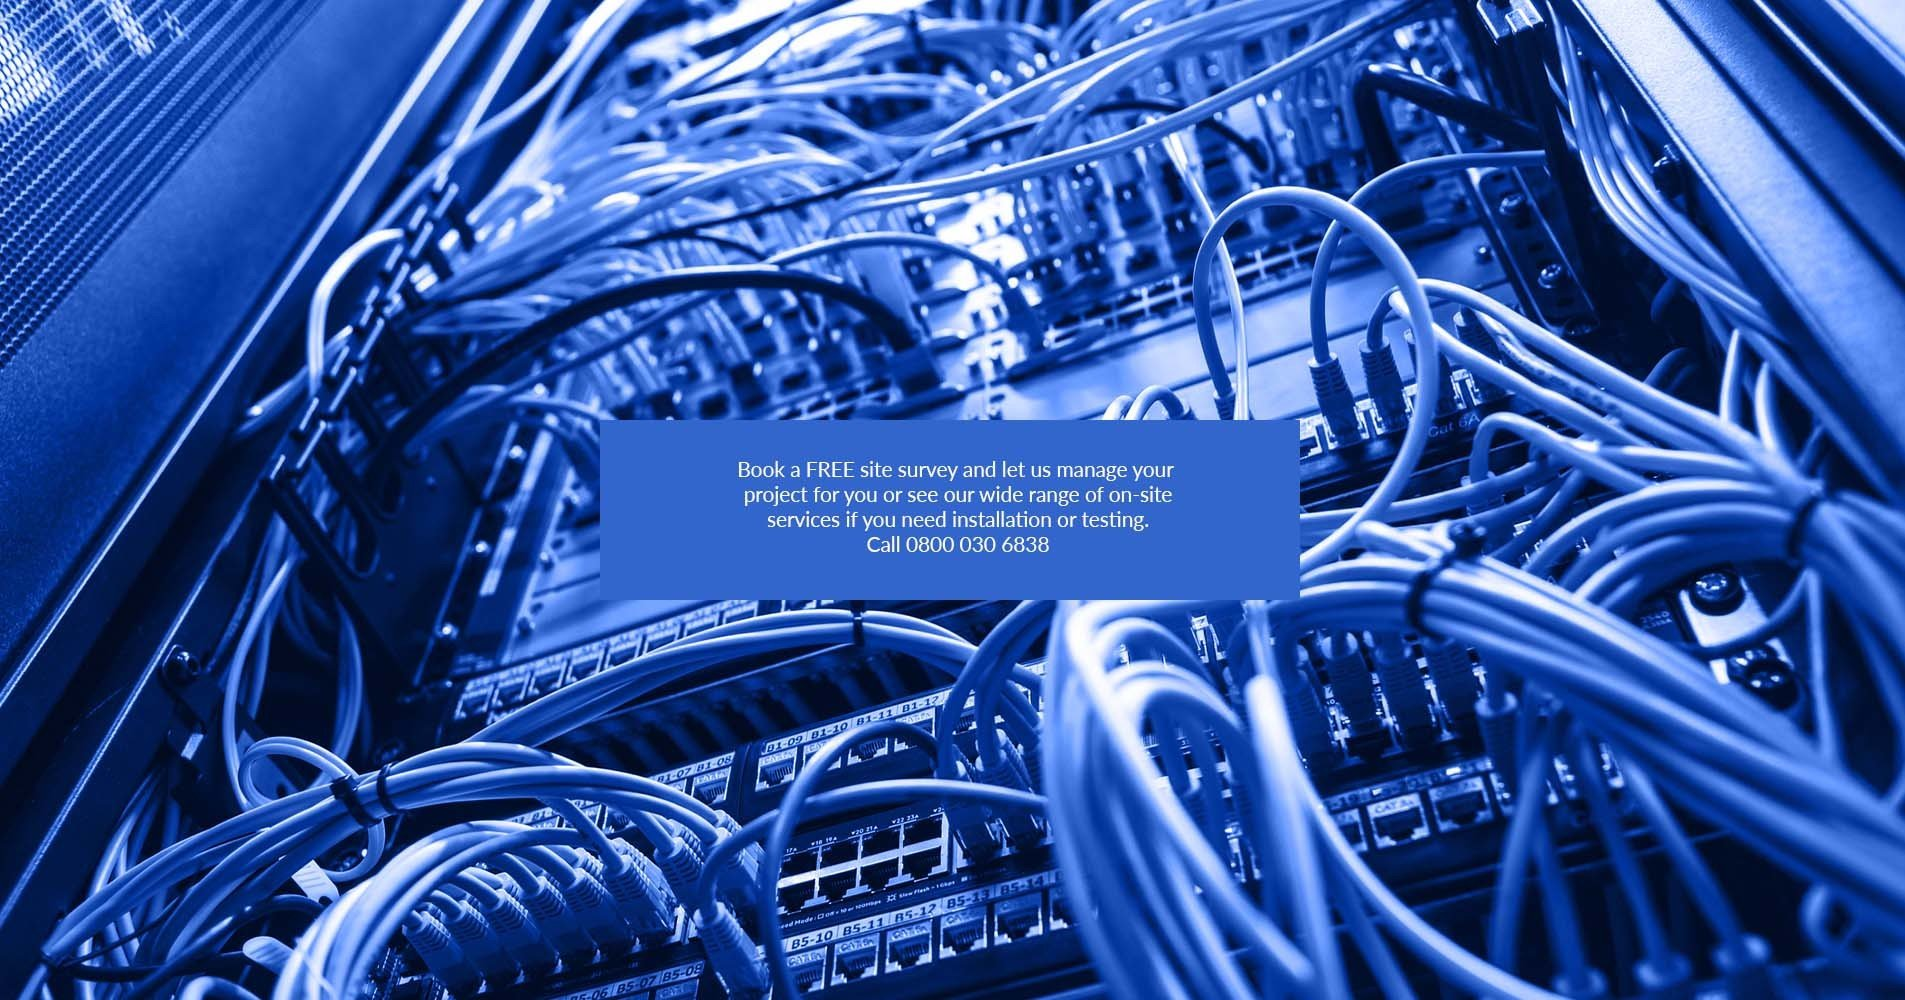 Structured Network Data Cabling